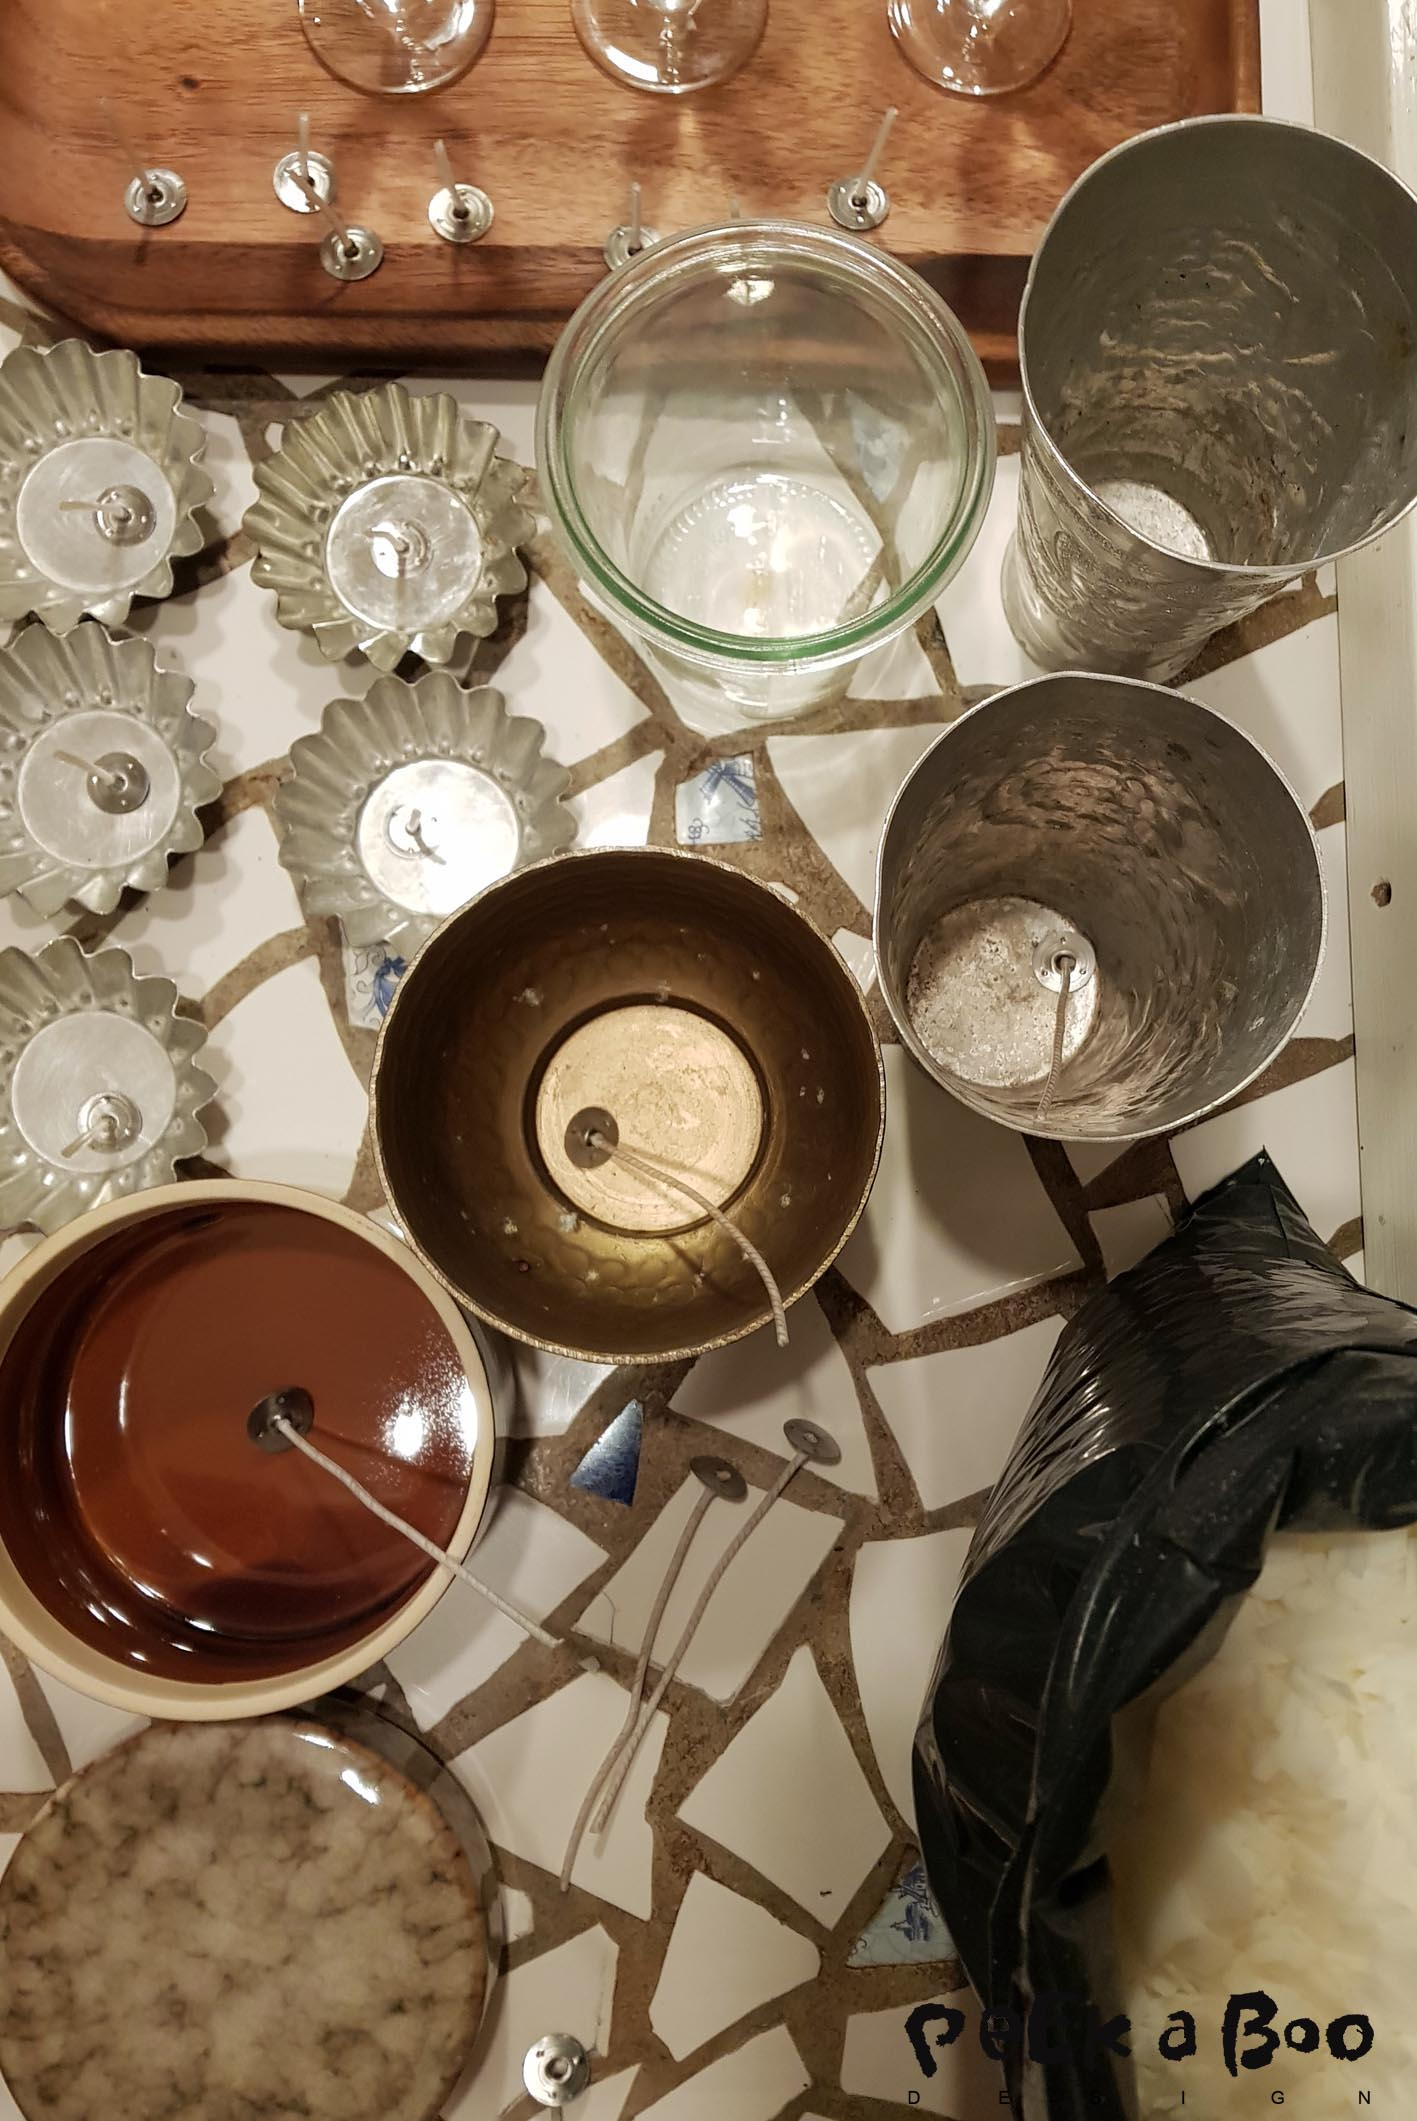 The materials you need for making the soya candlelights.